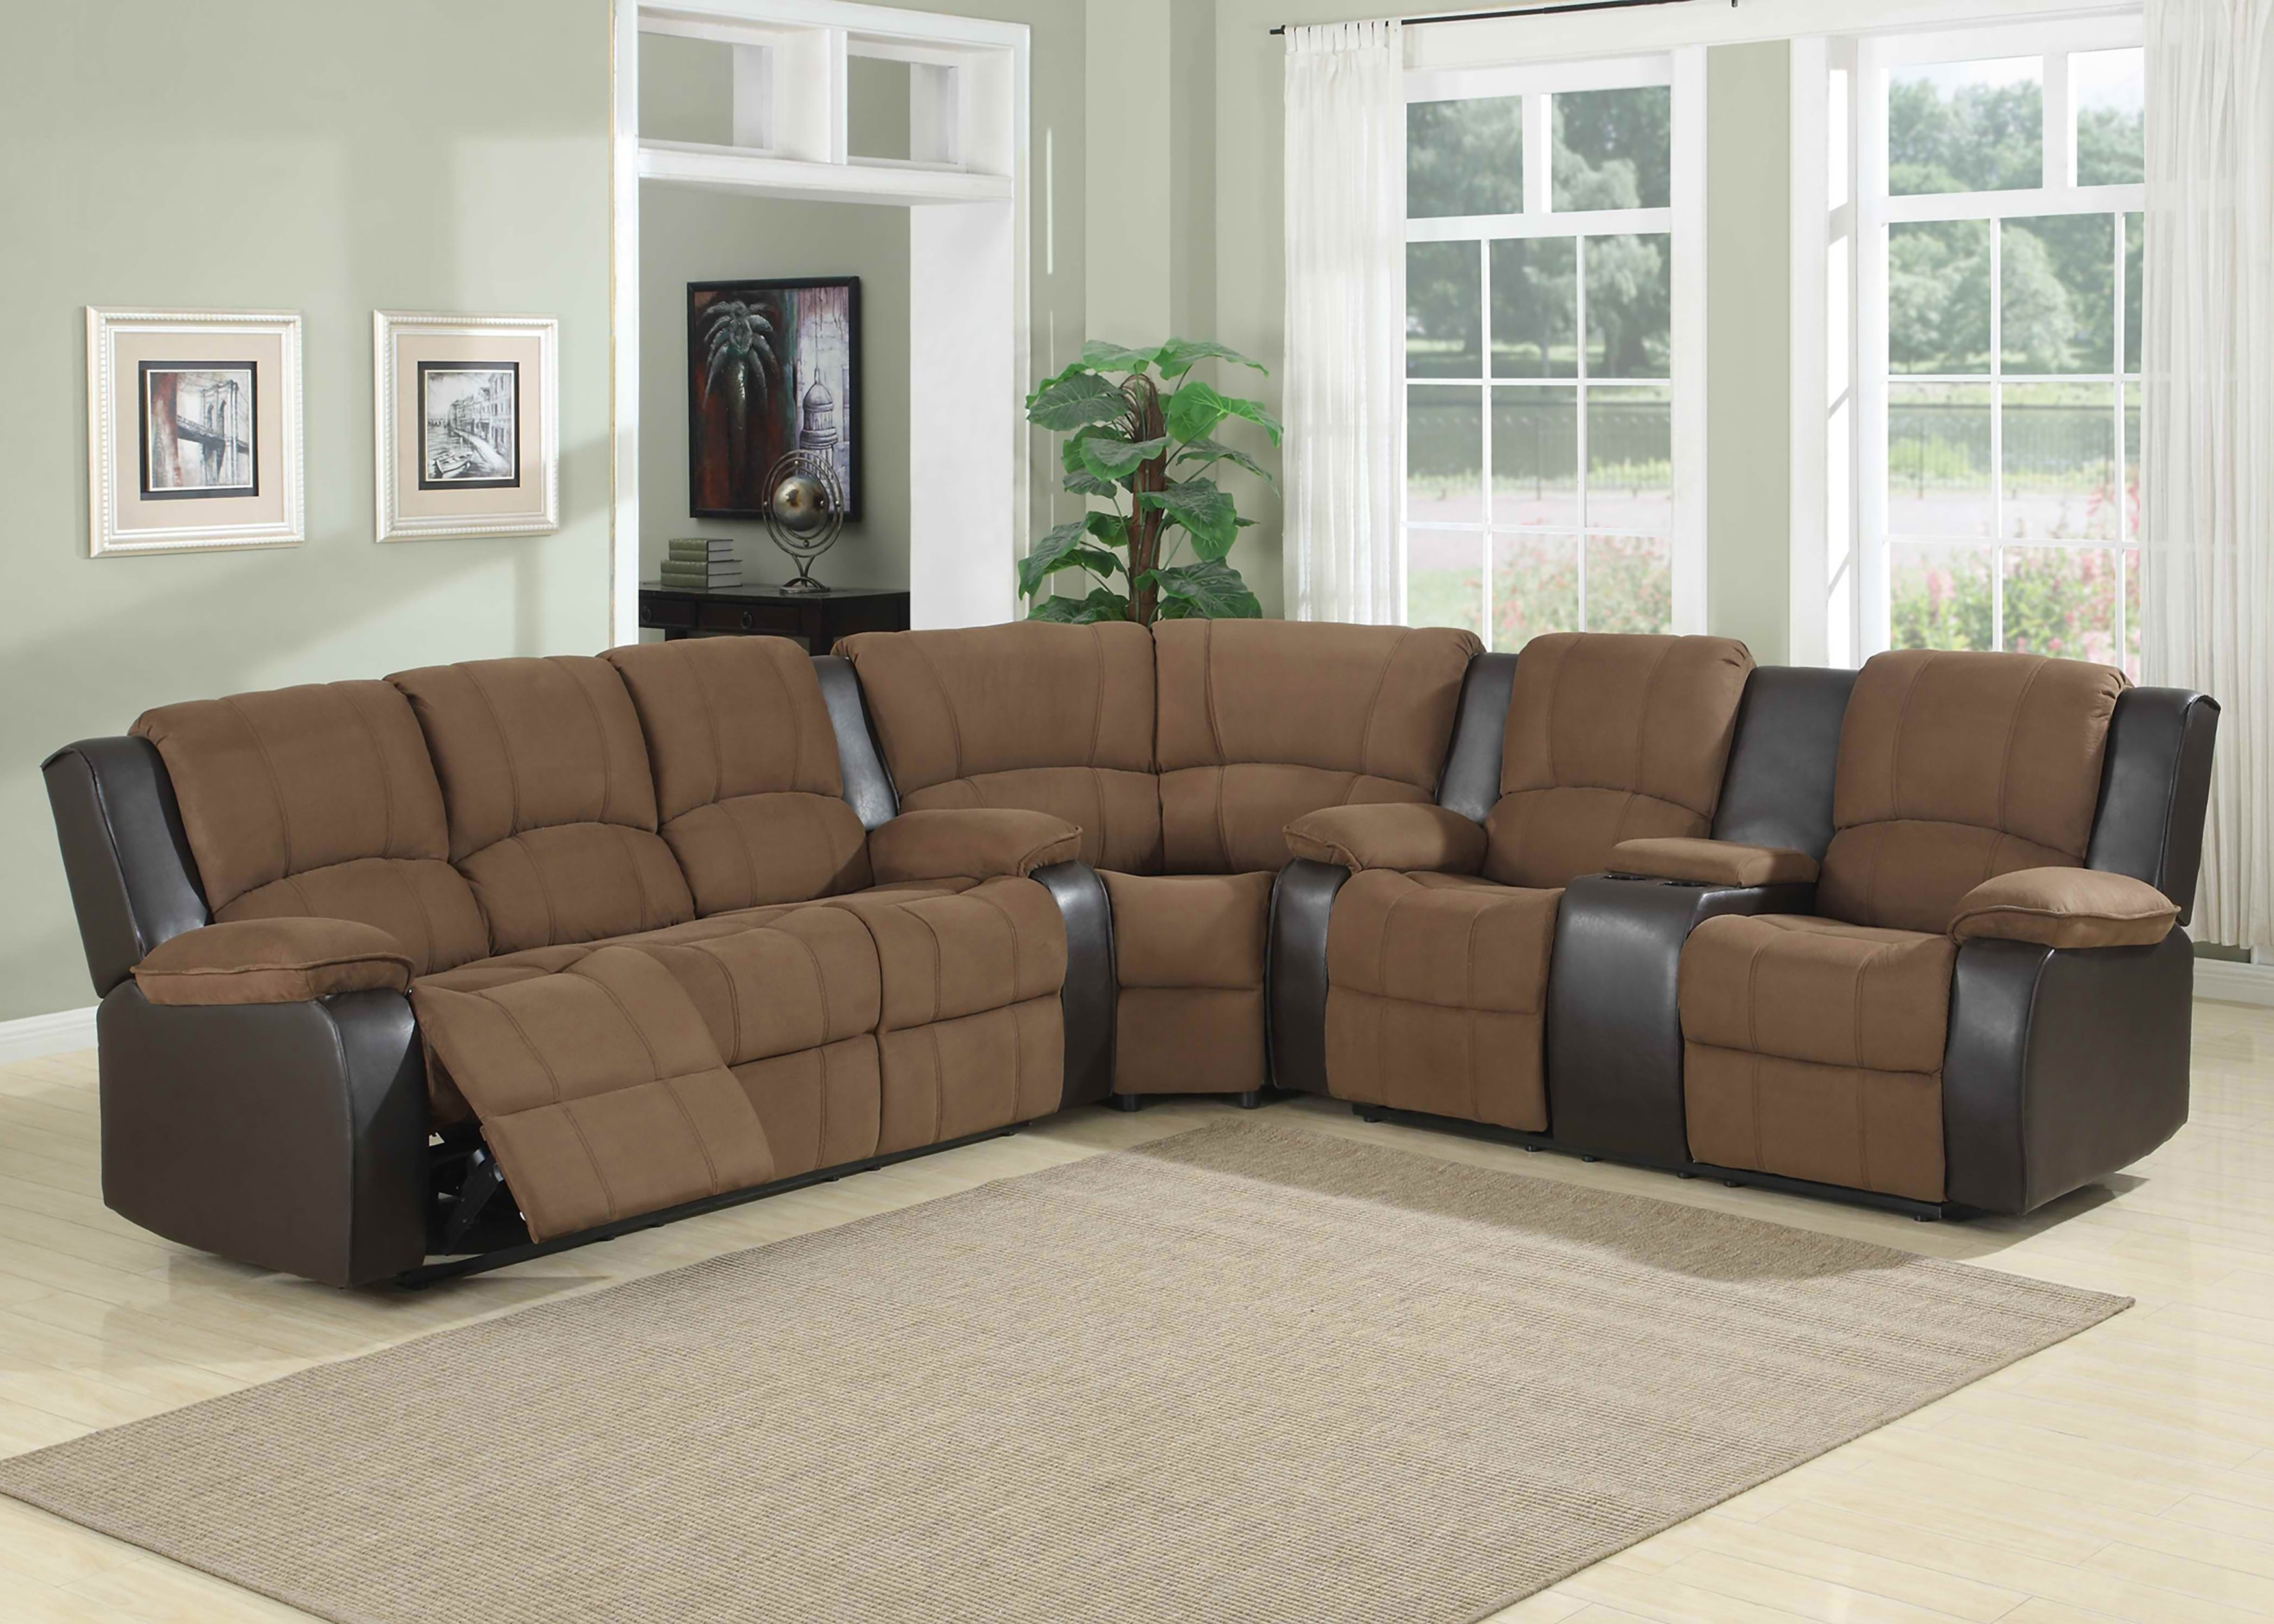 Current Vaughan Sectional Sofas With Regard To Sofa Cheap Sectional Sofas Fabric Sectional Vaughn Apartment Beautiful  Vaughn Sectional Sofa 5Pc Dimensions Of Vaughn Sectional Sofa  5Pc Dimensions  (View 14 of 15)